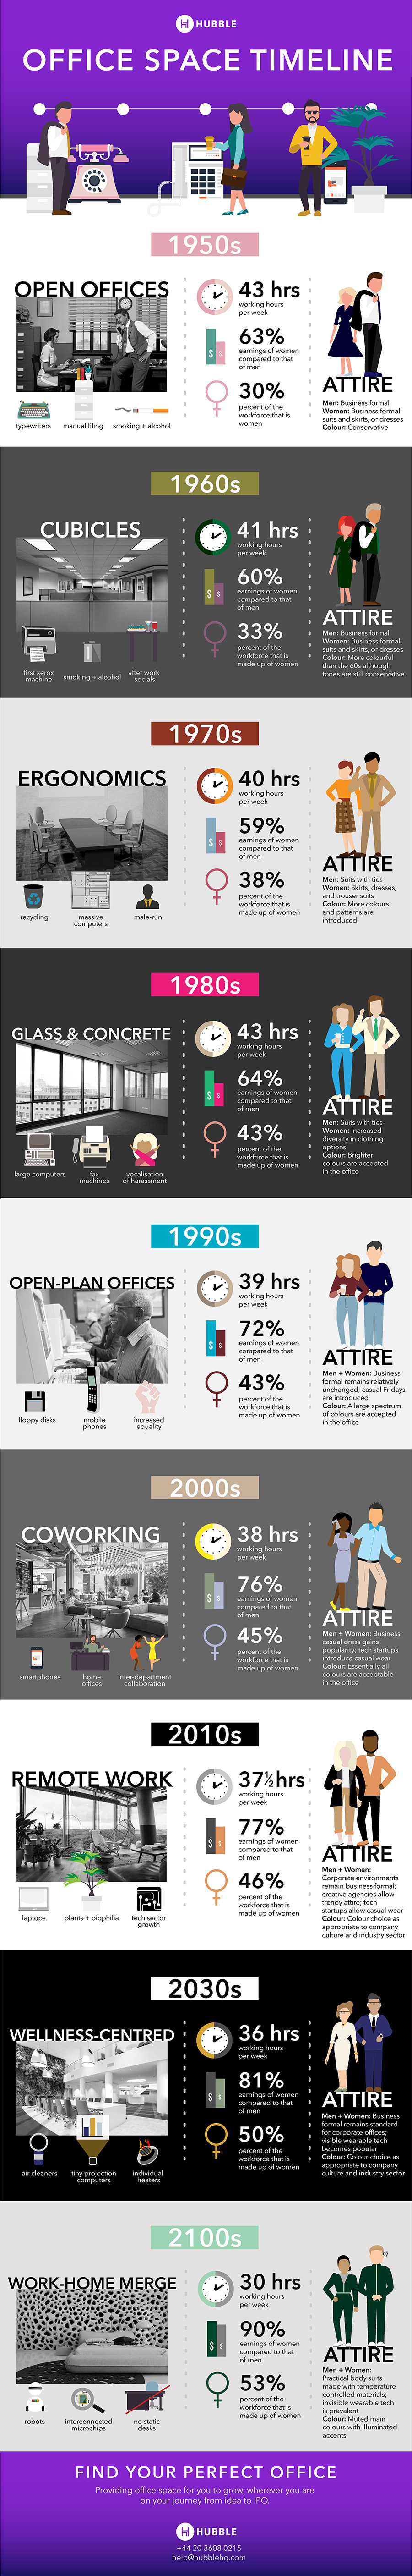 office space timeline infographic 1950s to 2100s.